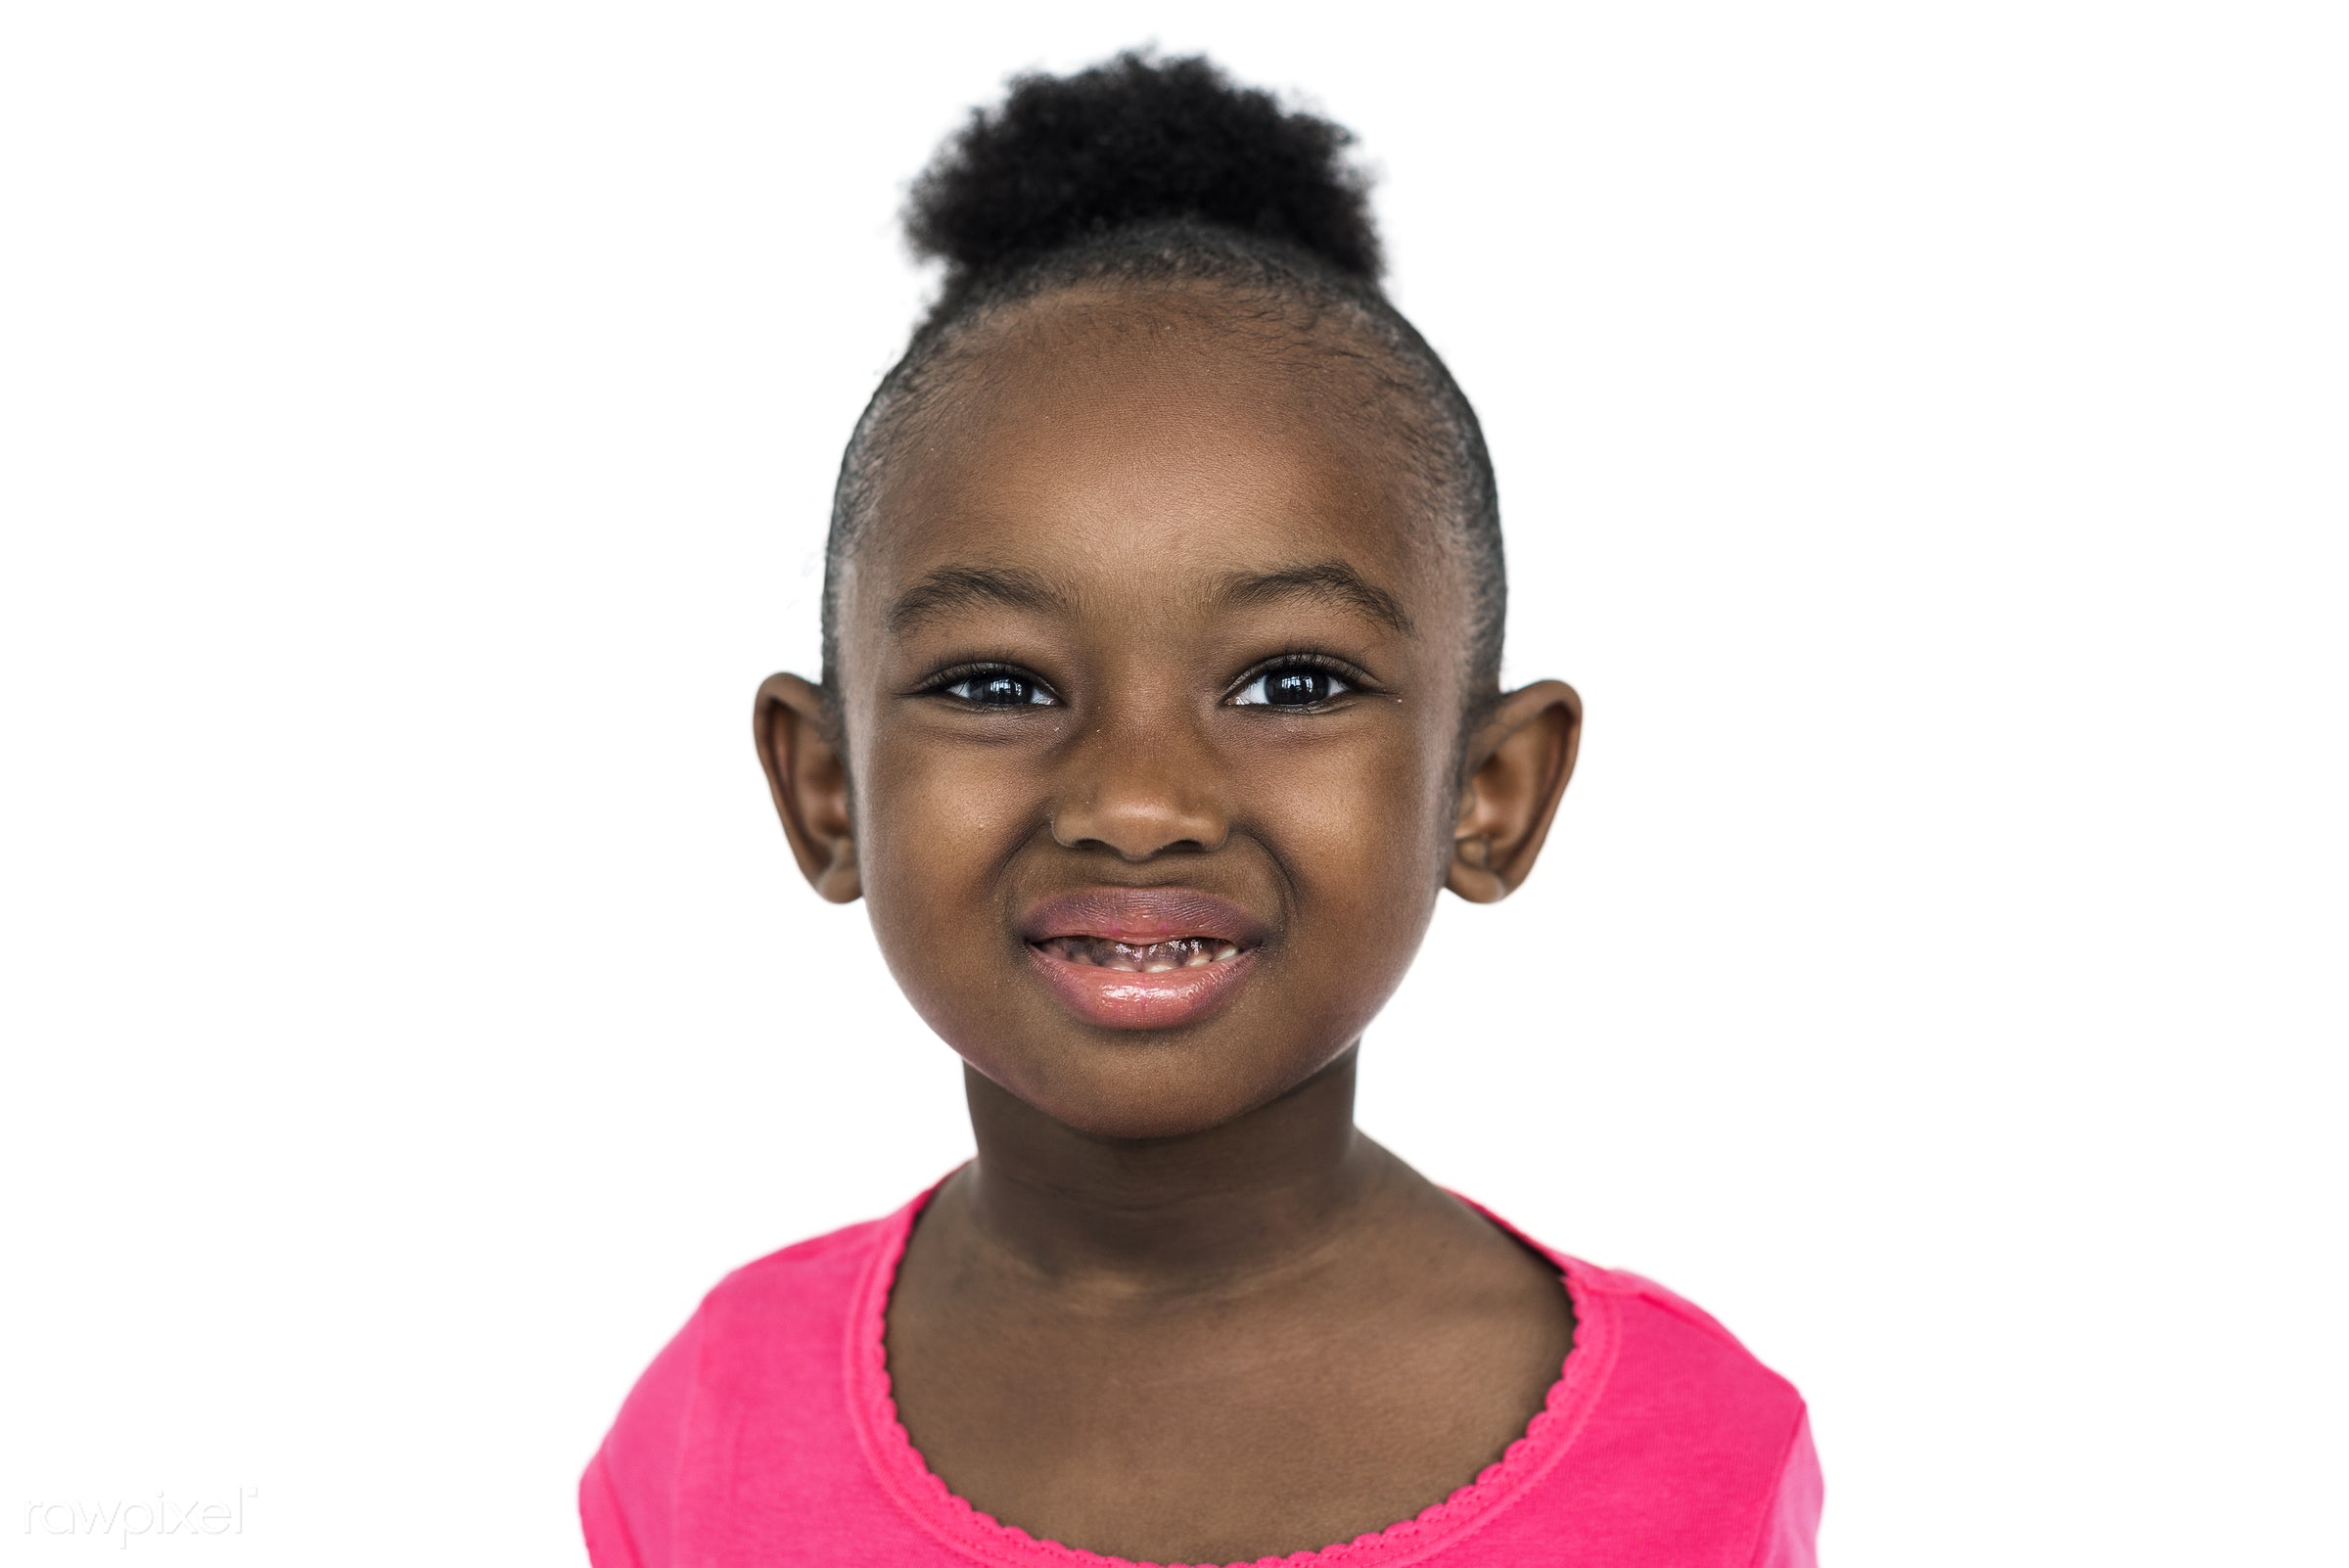 studio, expression, person, people, kid, childhood, smile, cheerful, smiling, isolated, little girl, african descent, white...